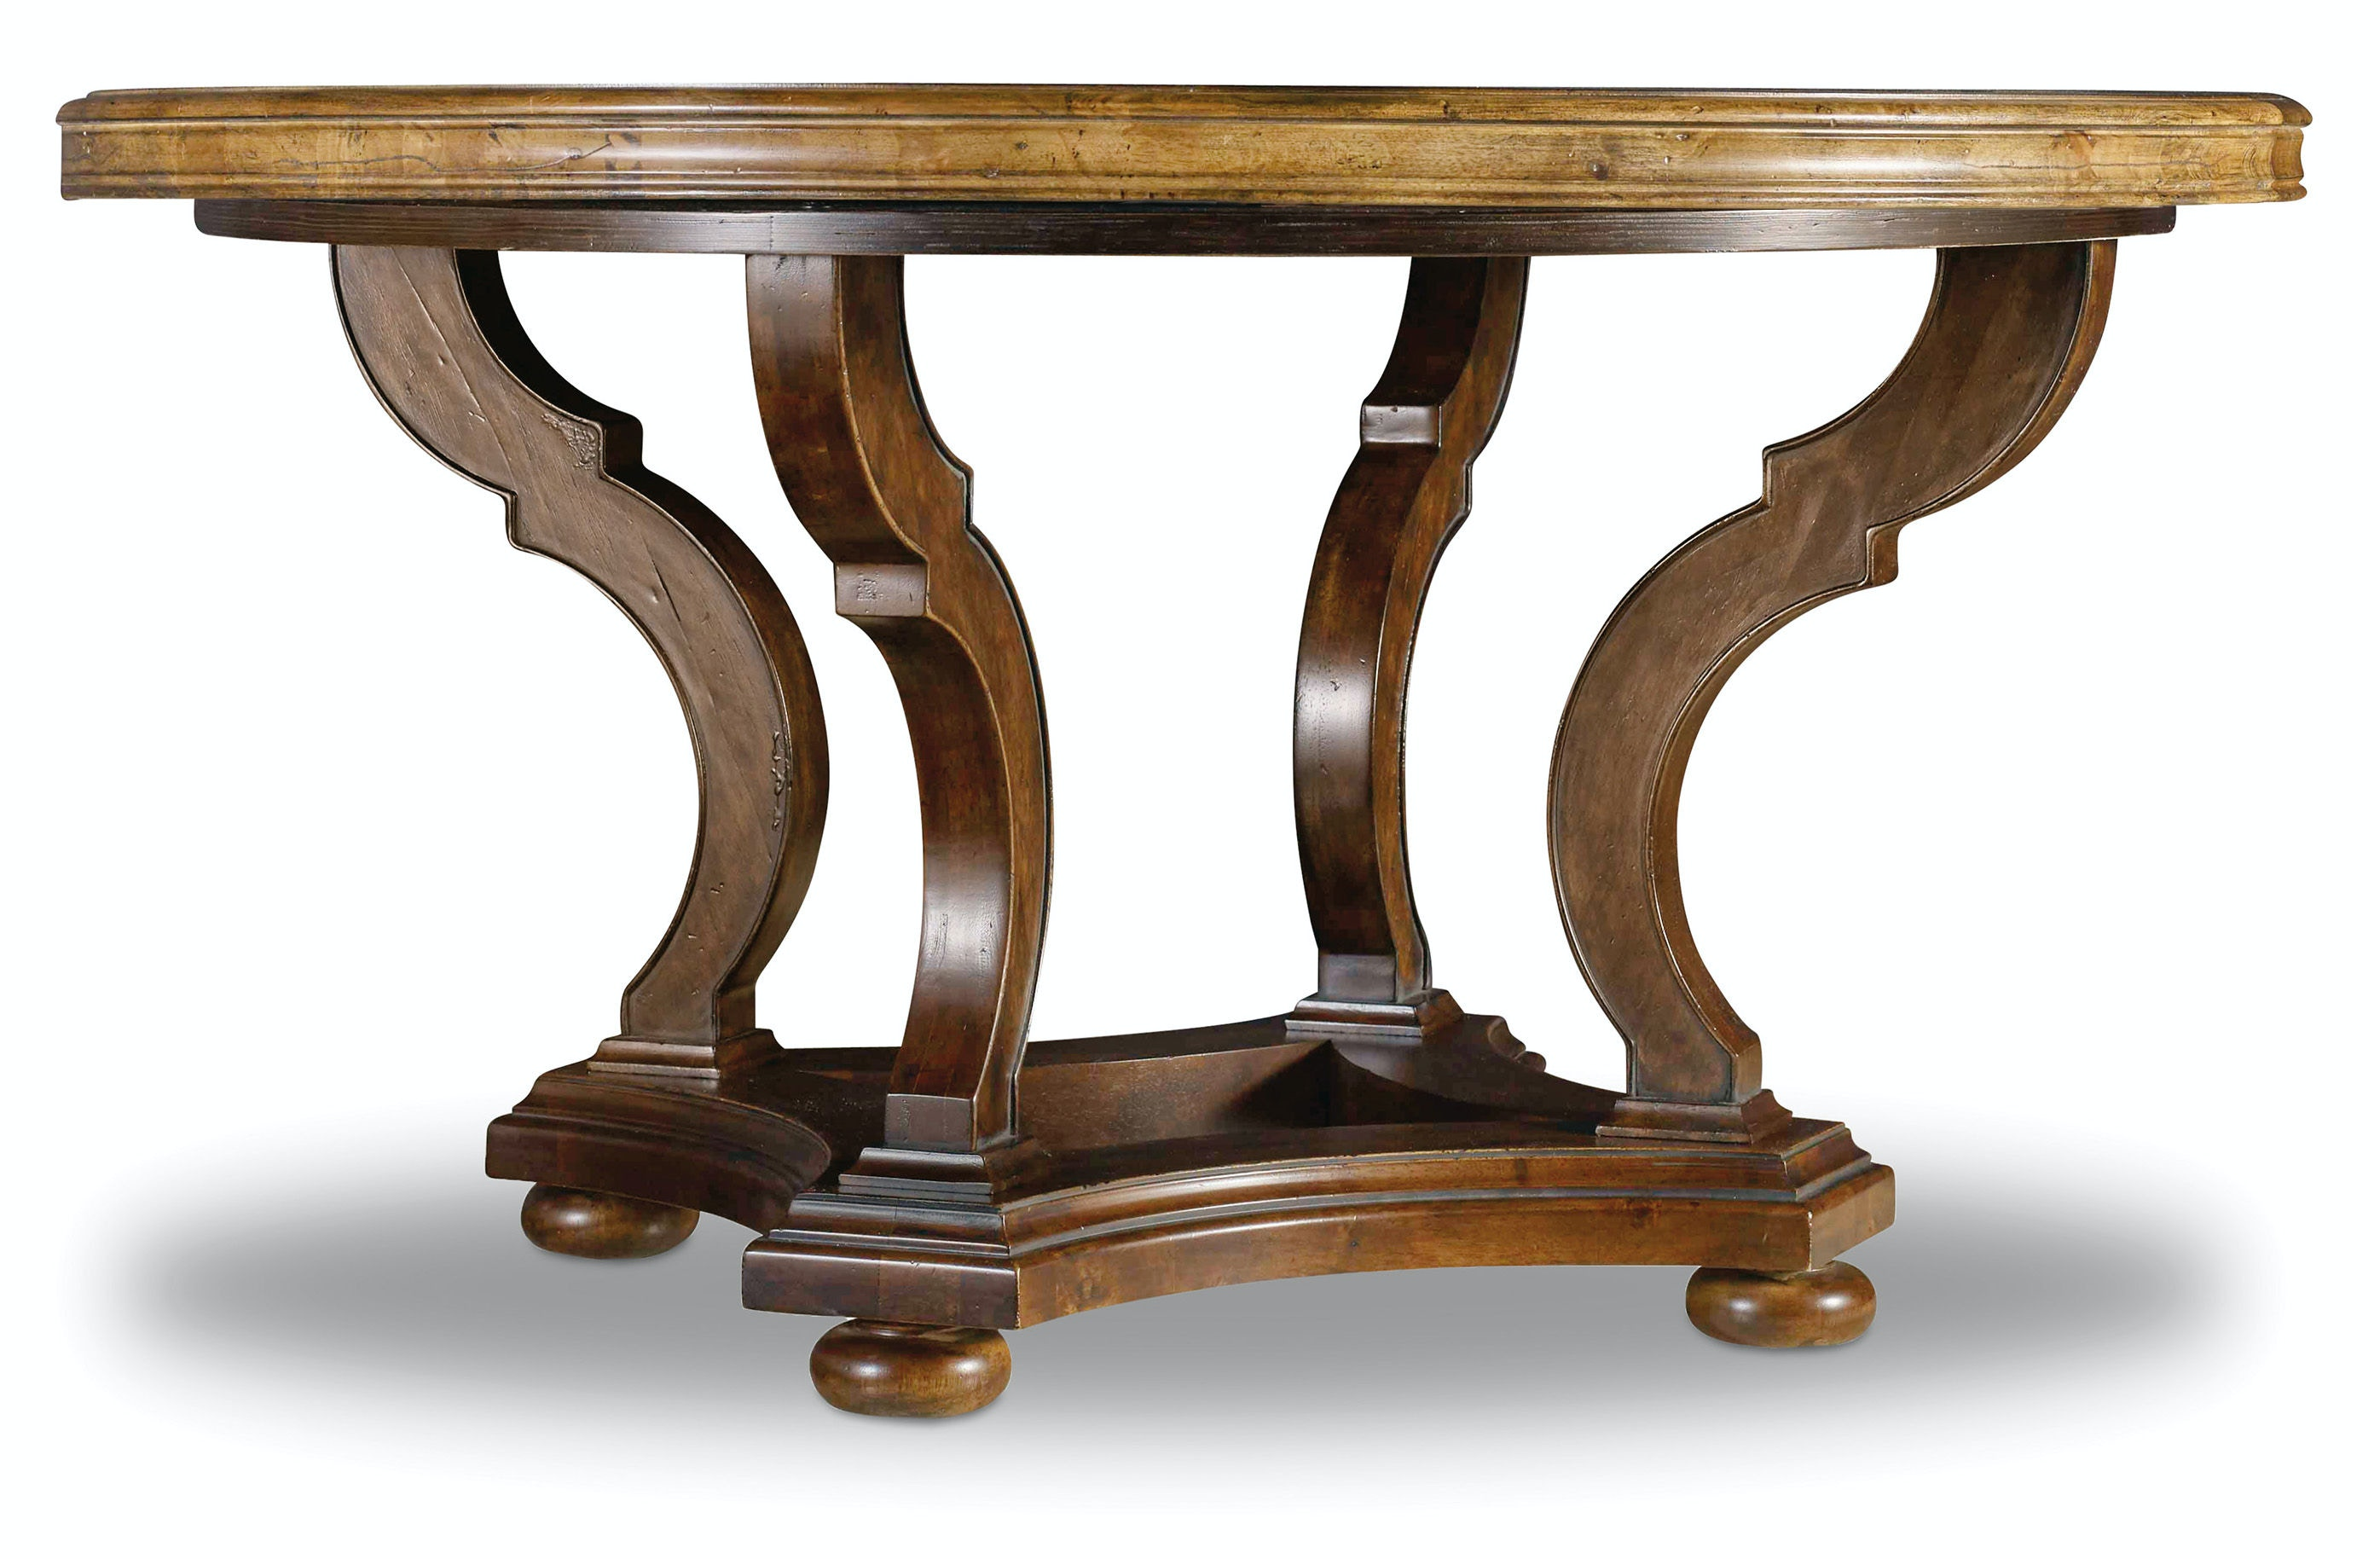 Hooker furniture dining room archivist 54in round dining for Round table with leaf and chairs